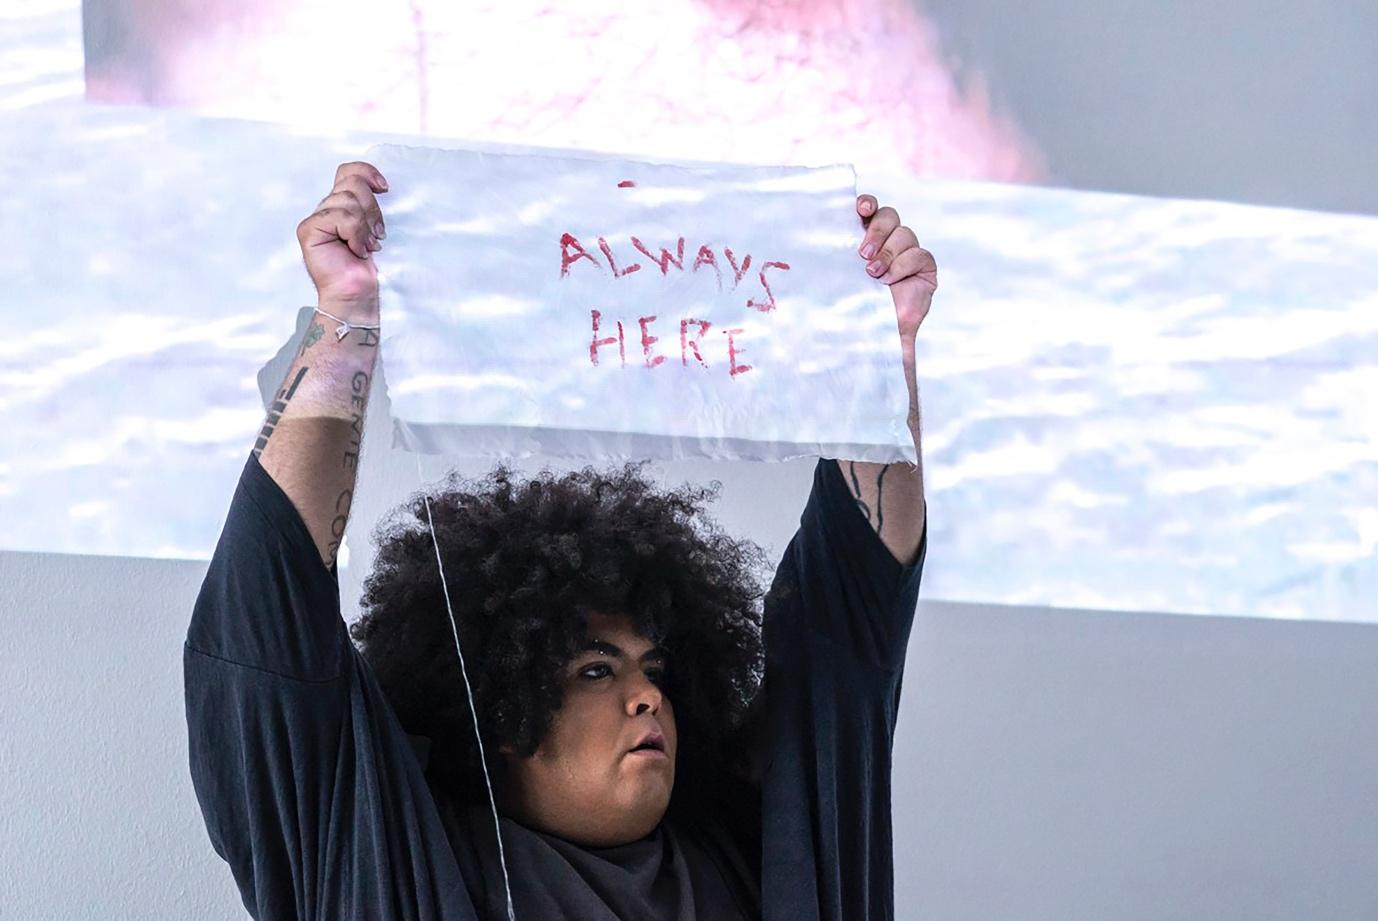 Biennale of Sydney Releases Artist List for 2020 Edition With Focus on Indigenous Artists -ARTnews